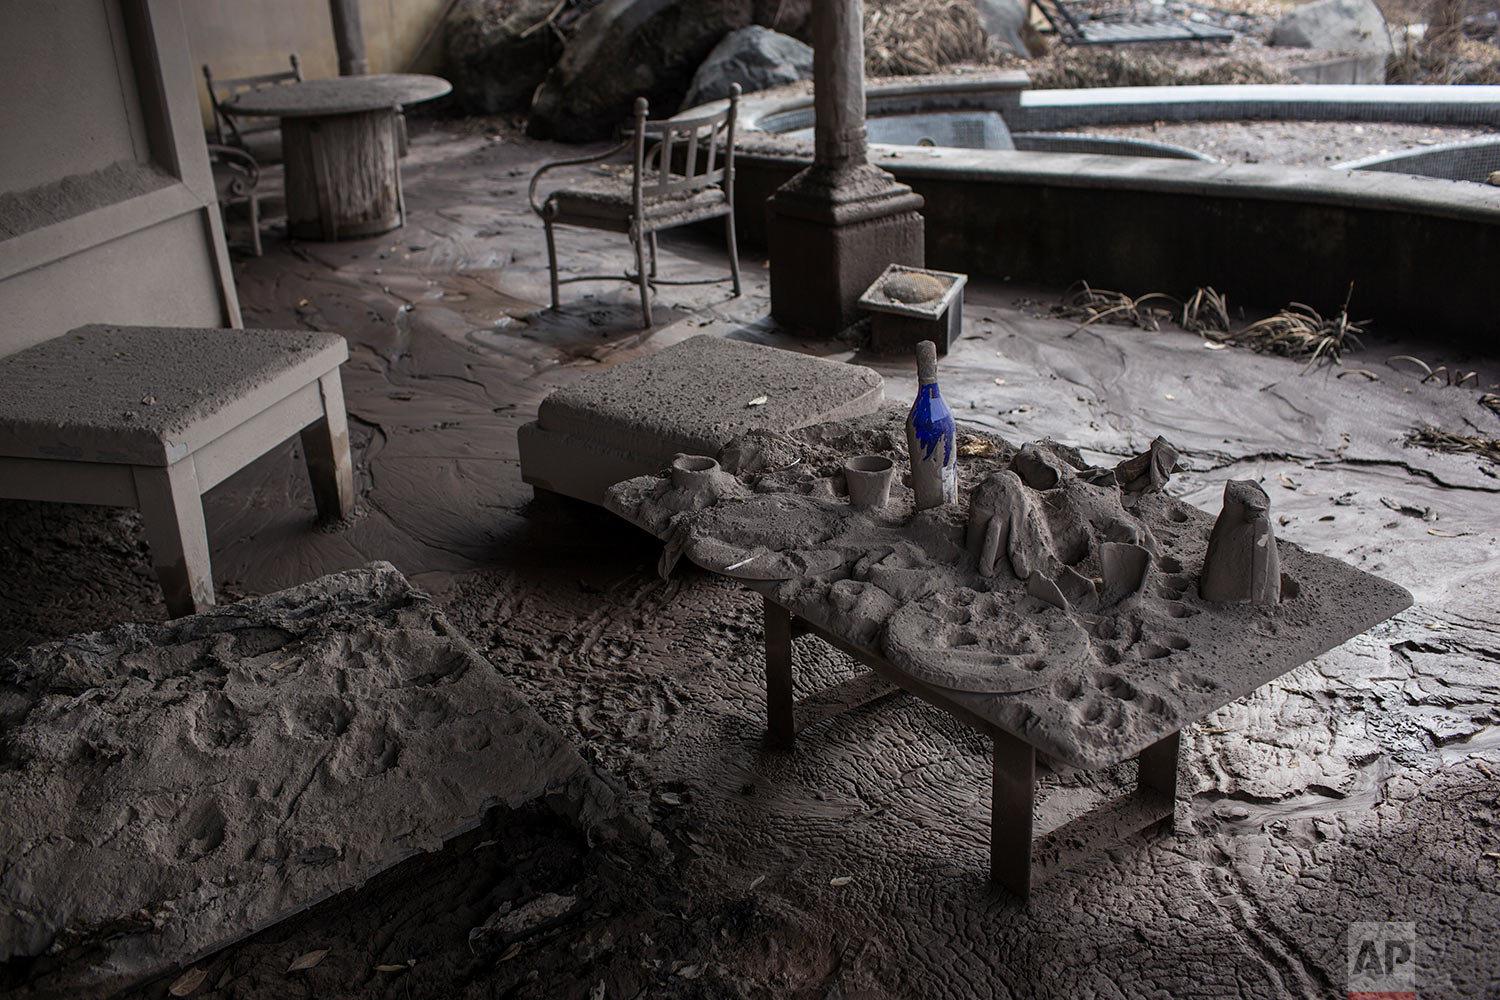 A table with plates and bottles sits blanketed in volcanic ash at the golf resort.San Miguel Los Lotes. June 16, 2018. (AP Photo/Rodrigo Abd)